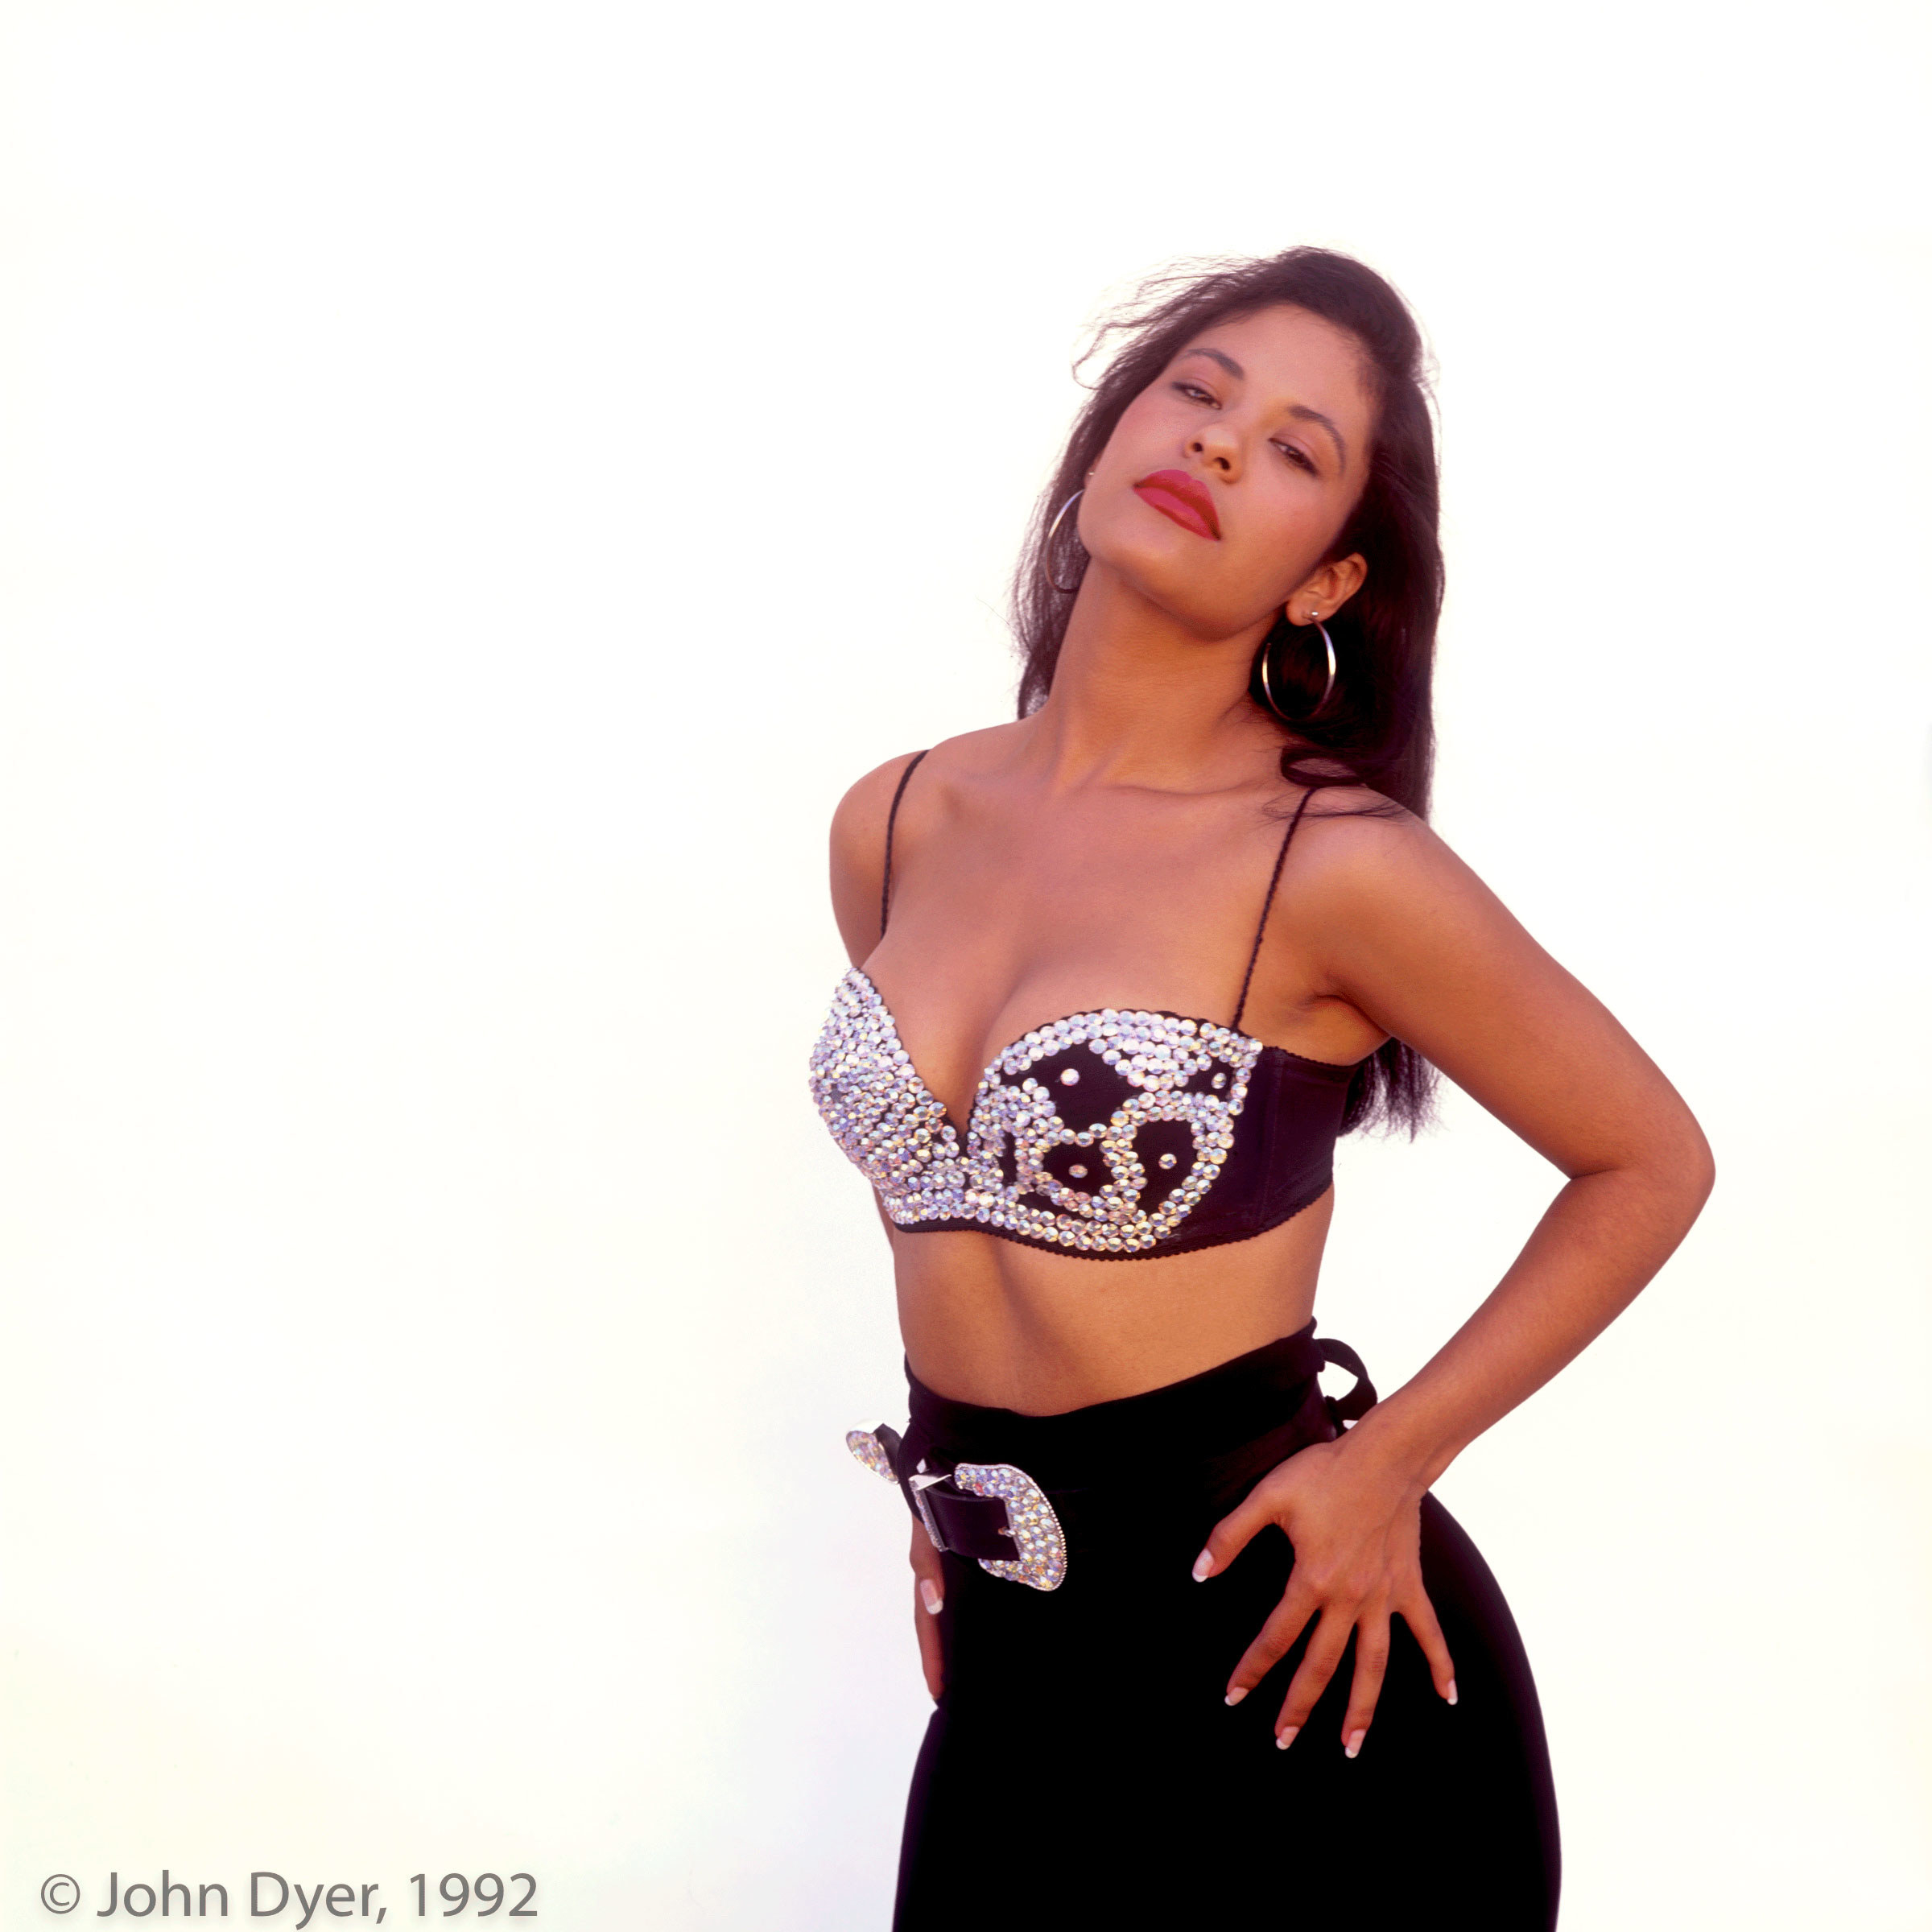 selena quintanilla posing for the camera in front of a white backdrop